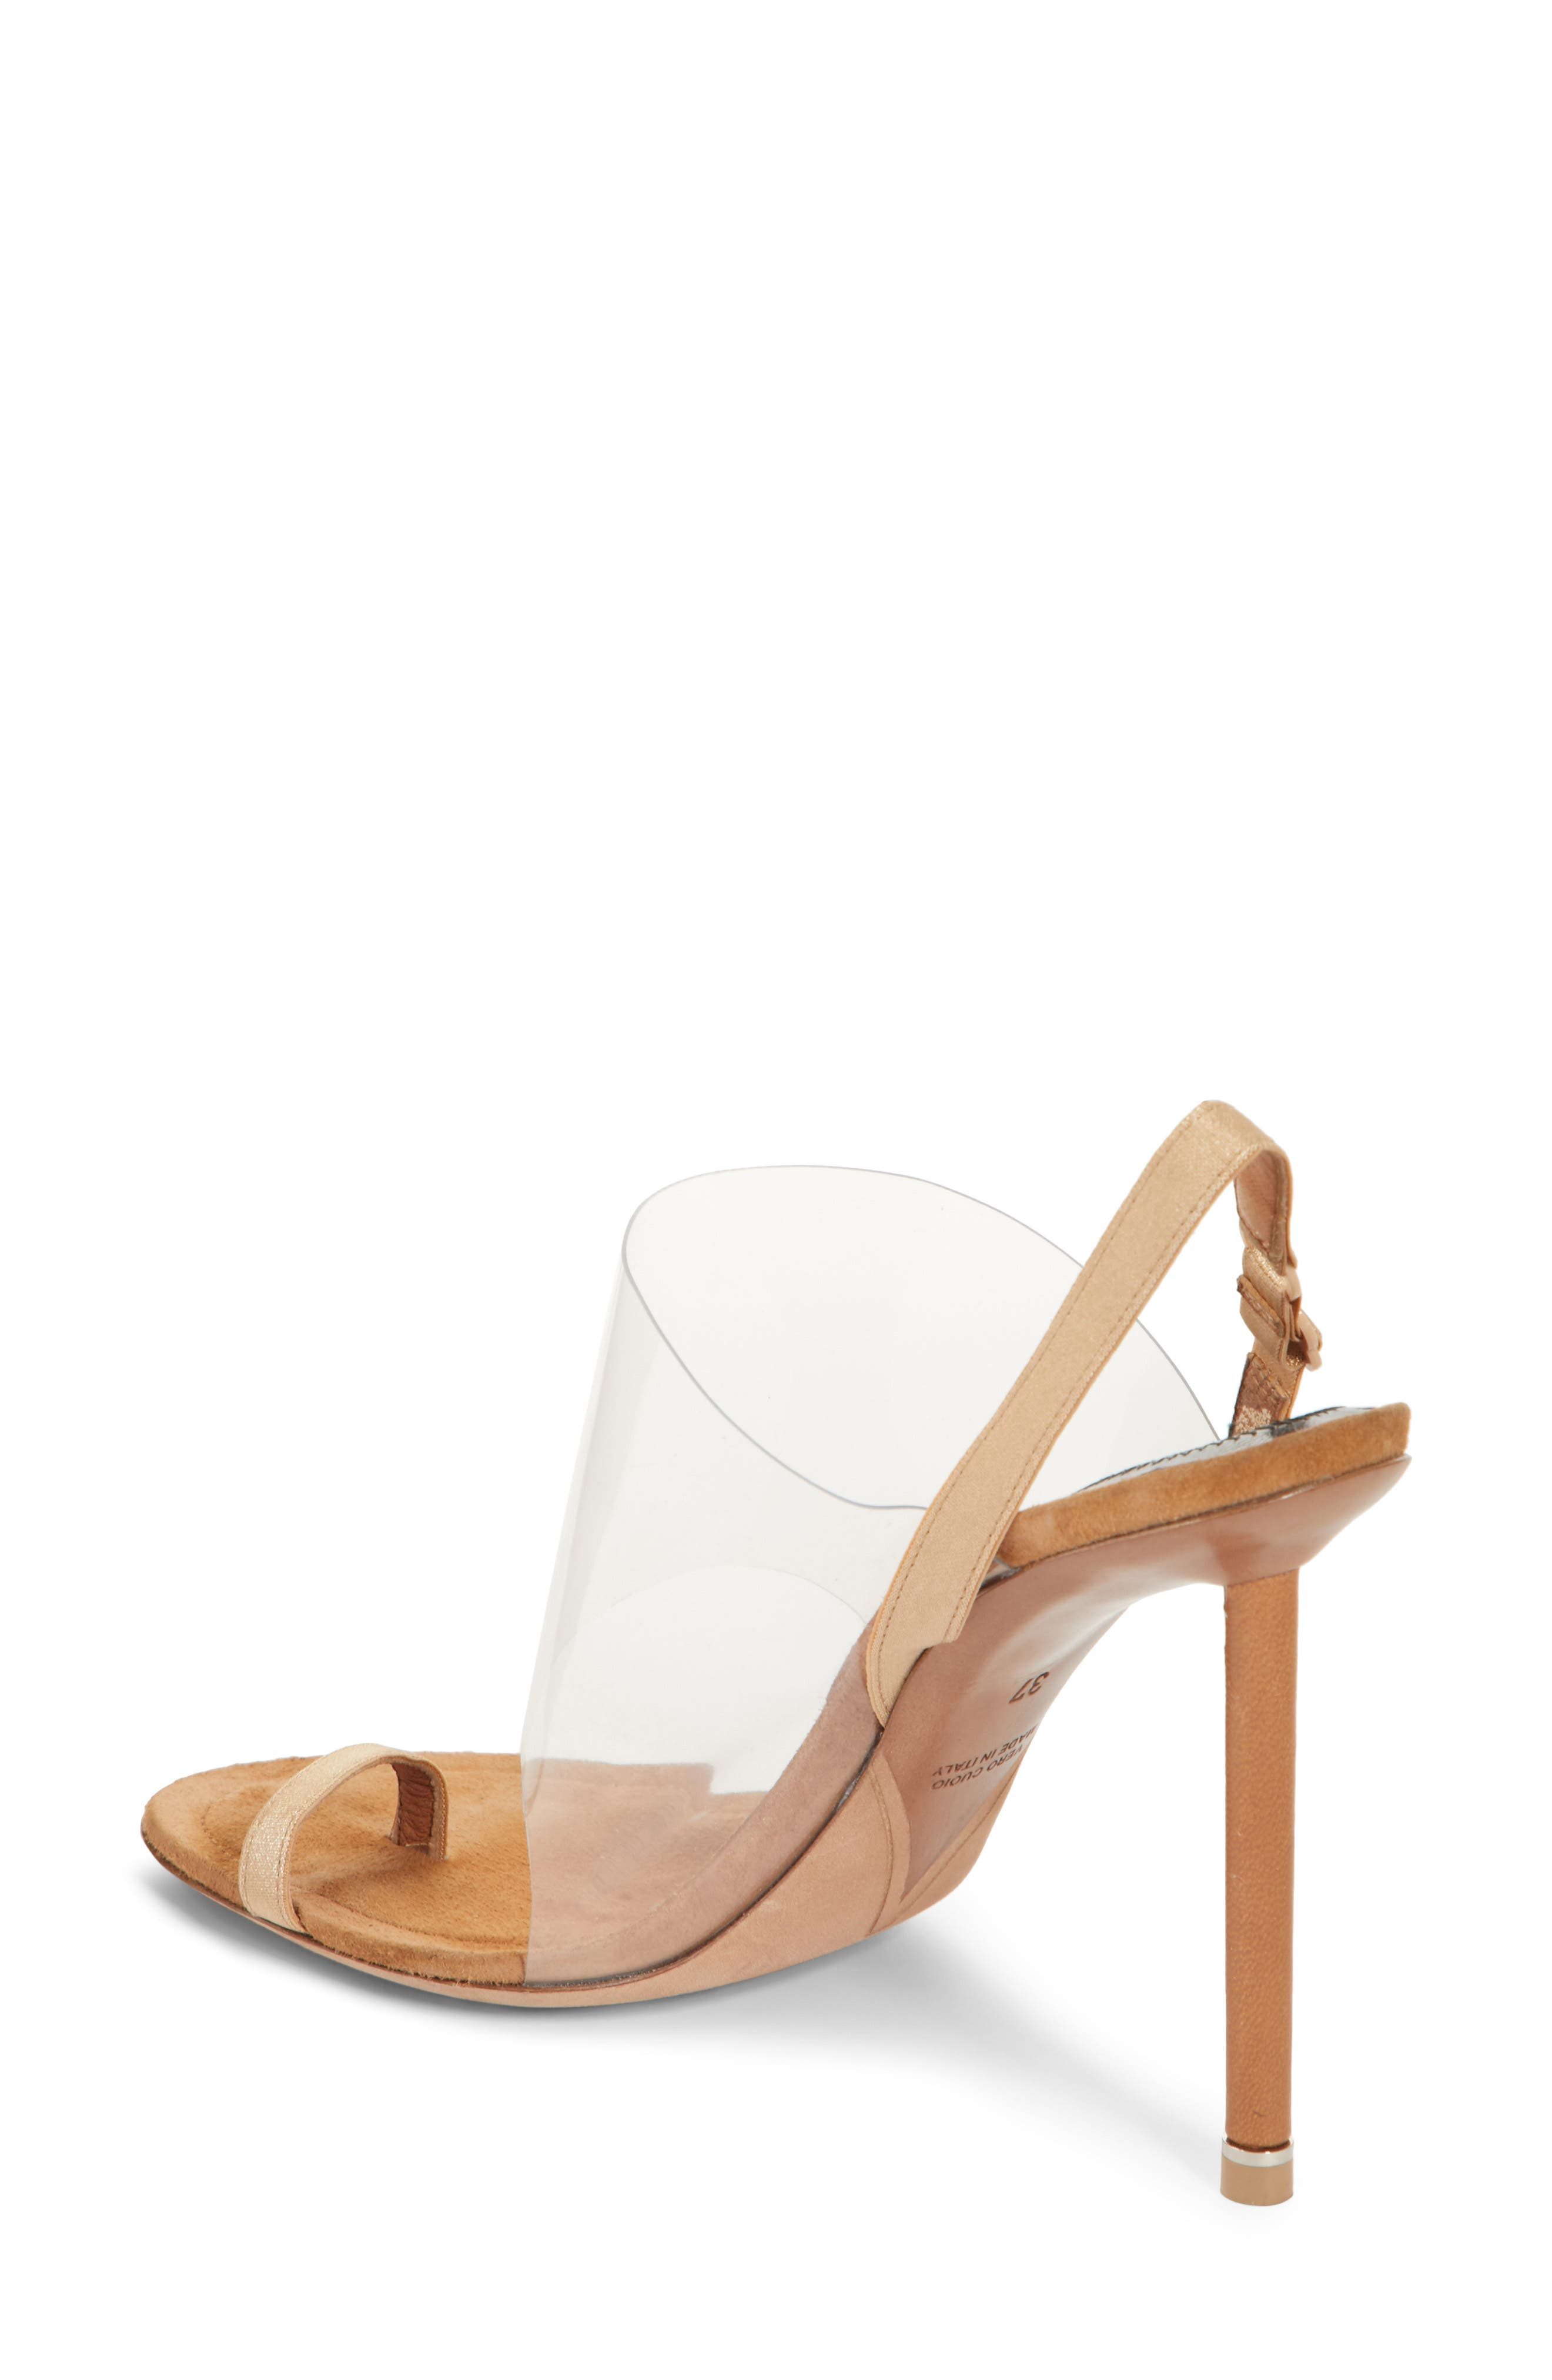 Kaia Sandal,                             Alternate thumbnail 2, color,                             Nude